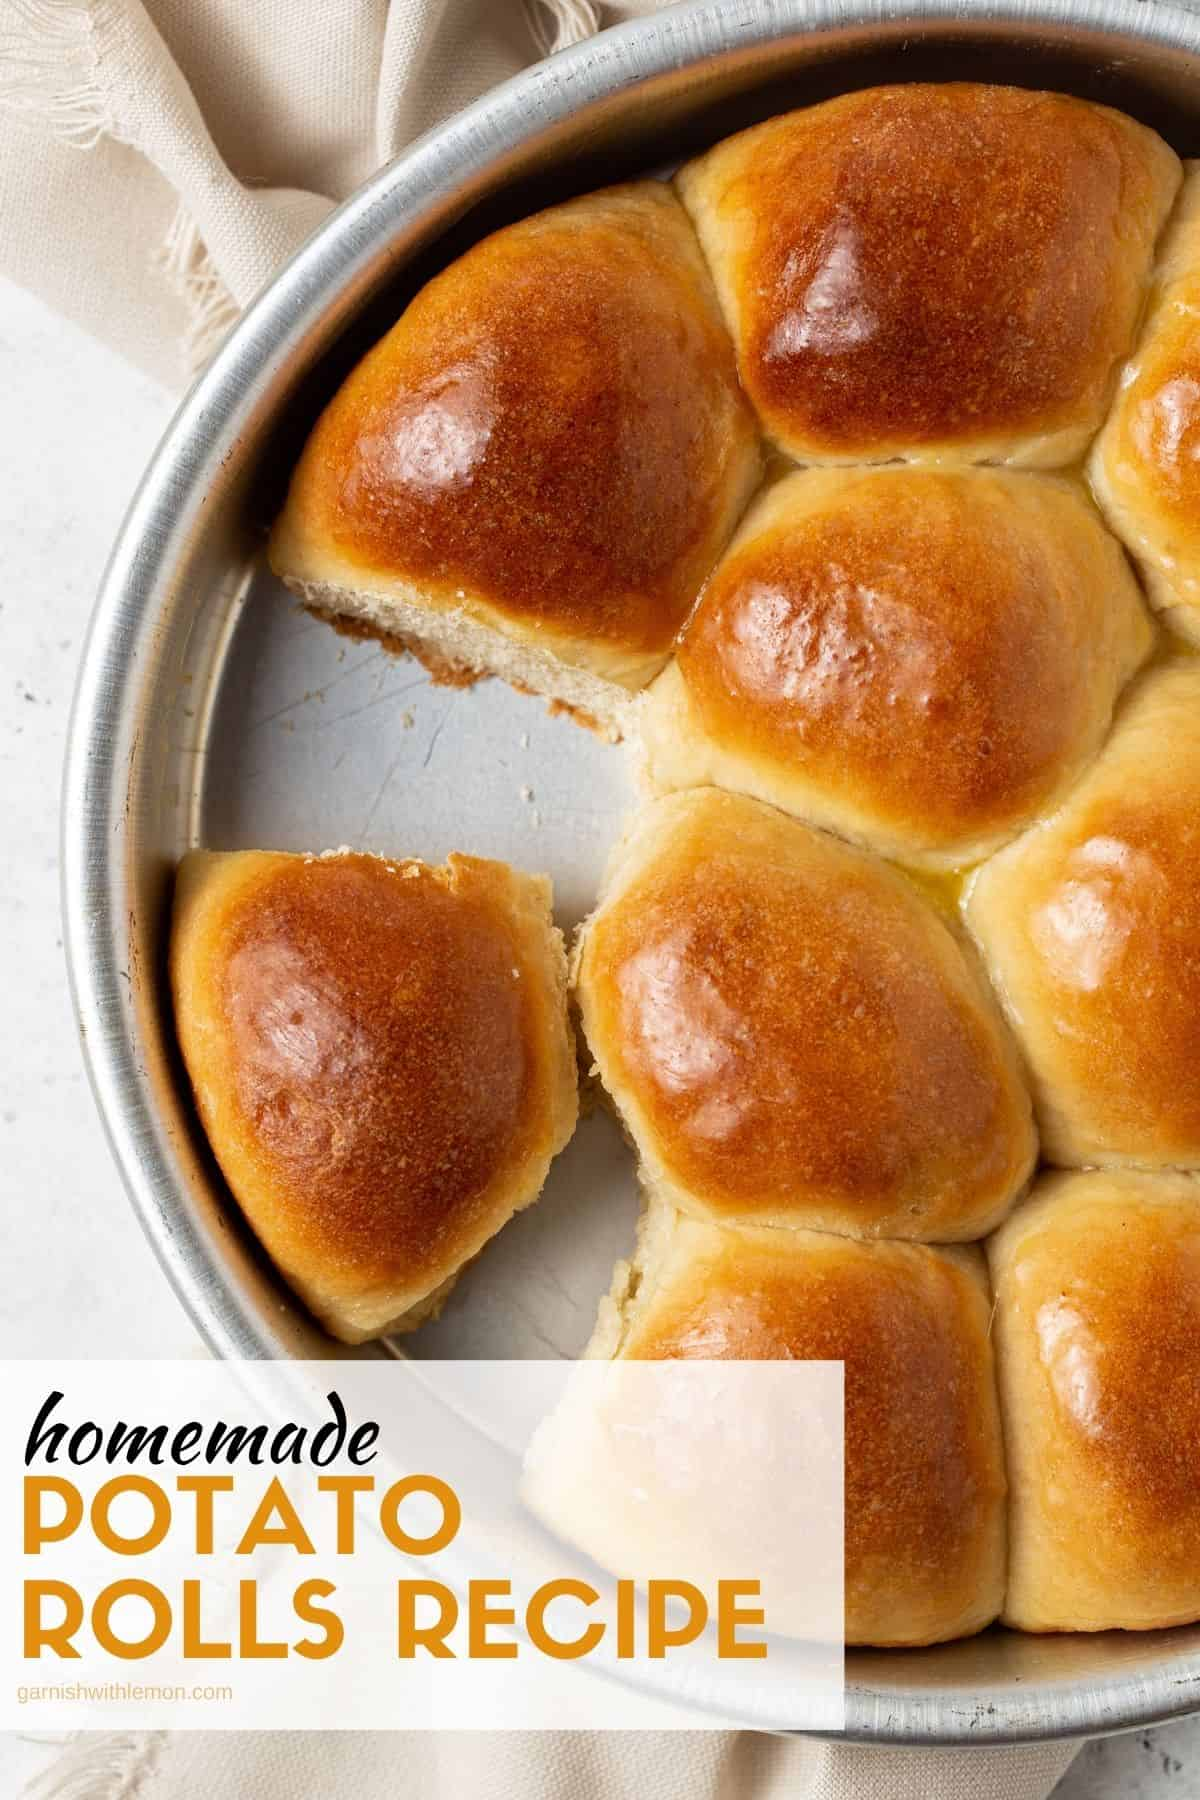 cake pan filled with baked potato rolls with one roll missing.